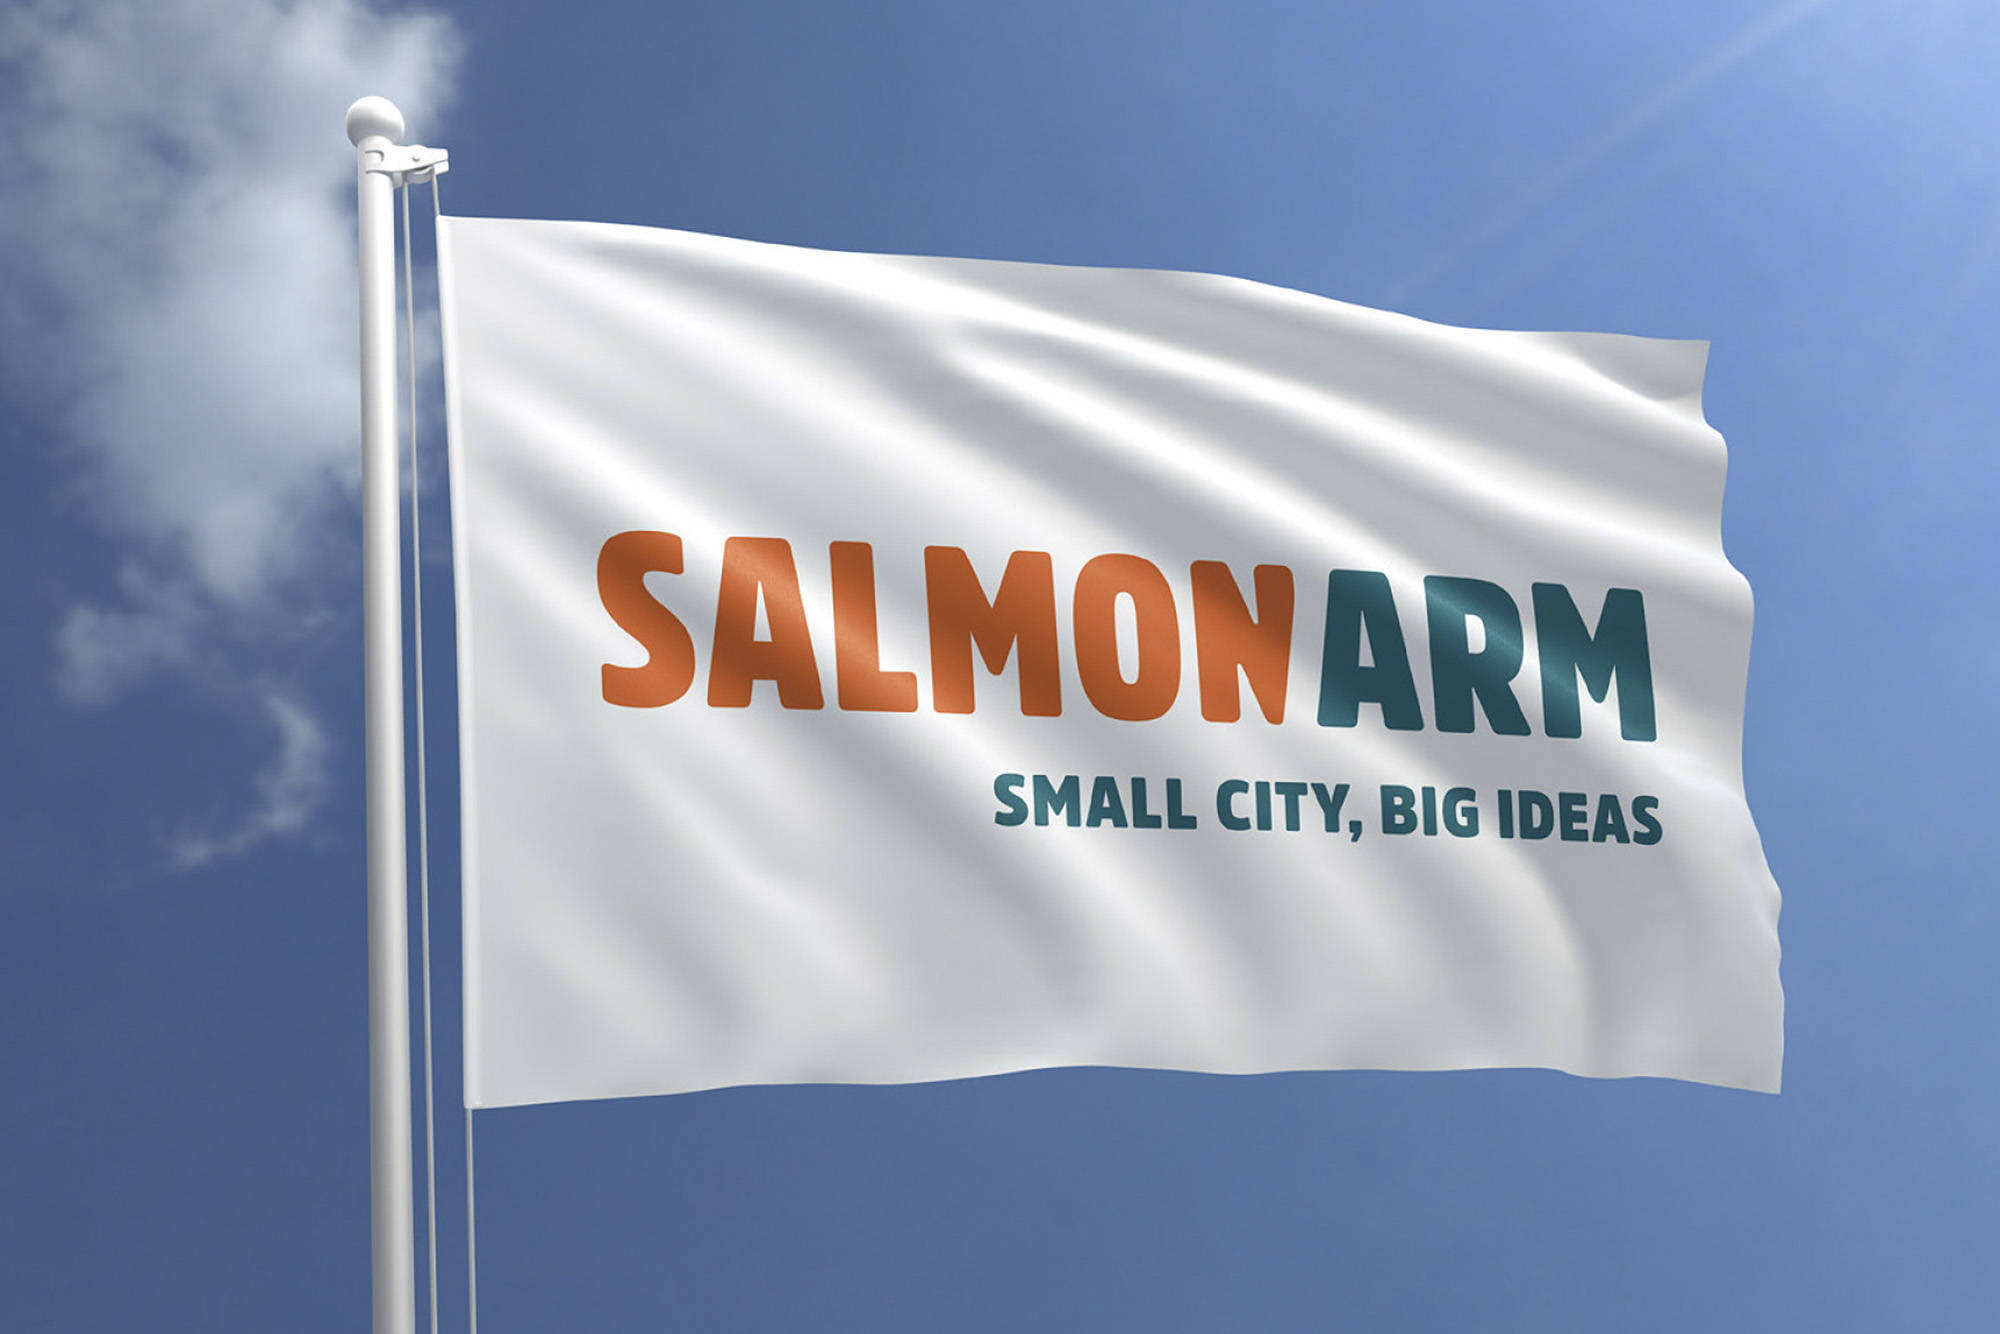 The majority of city council votes in favour of this design for a new Salmon Arm flag on Monday, May 10, 2021. (City of Salmon Arm image)